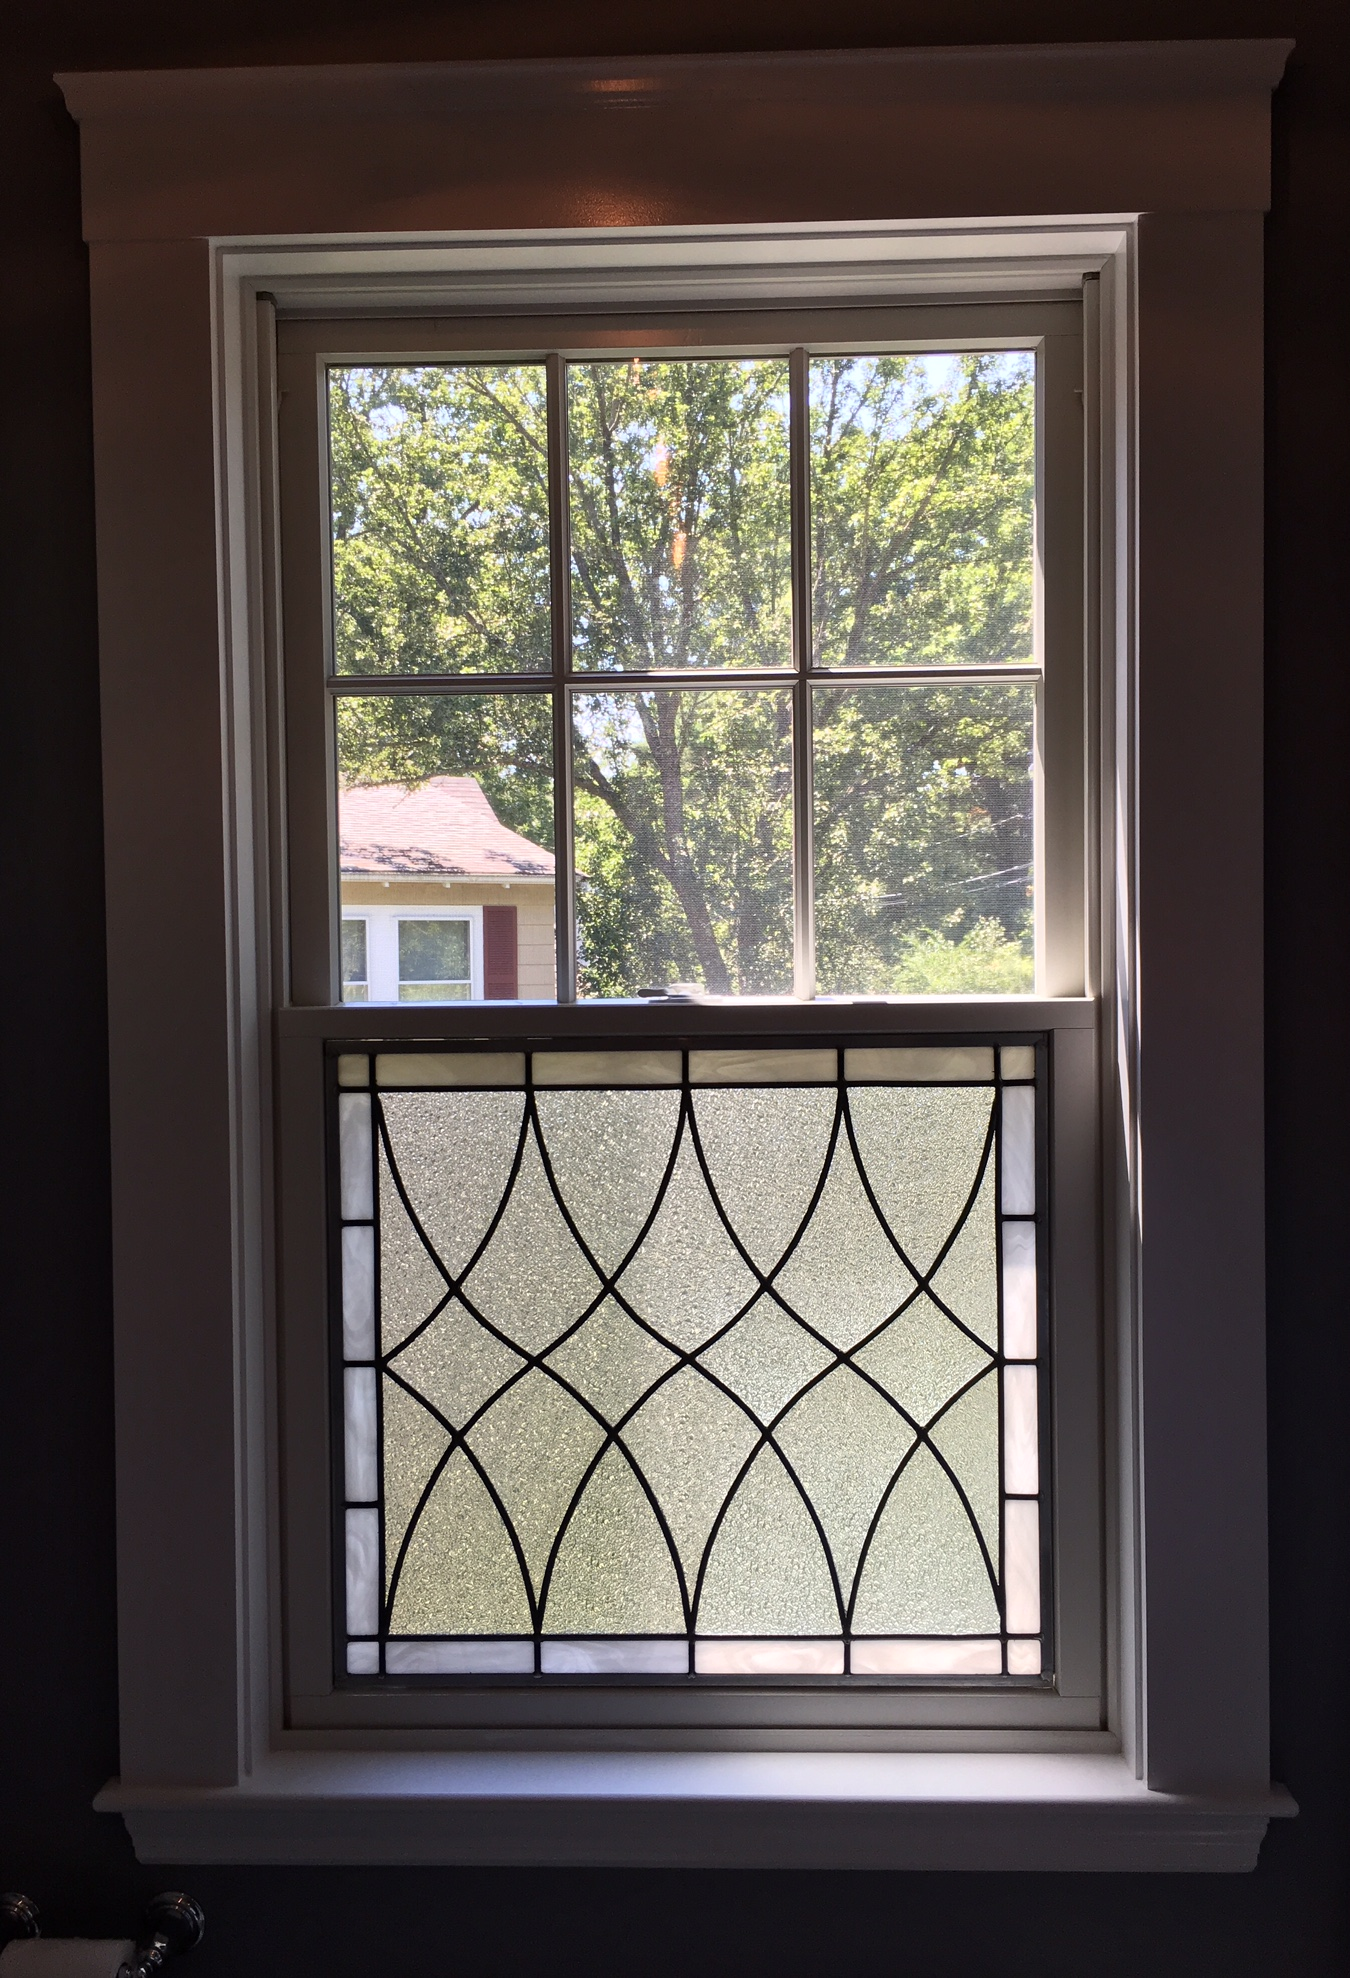 Clear Glass Windows : Classic clear textured leaded glass window insert attached